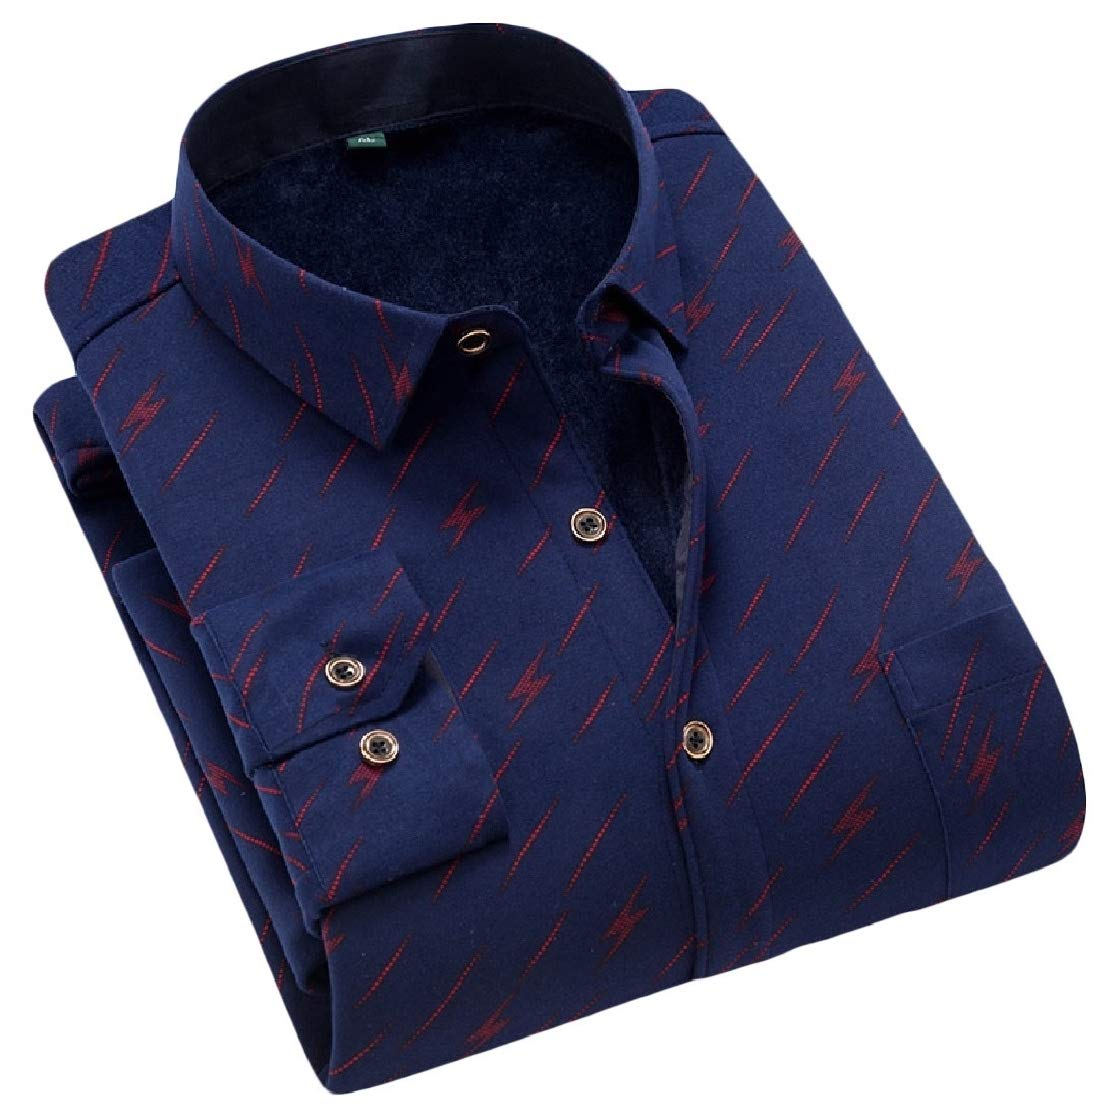 YUNY Mens Thicken Open Front Trim-Fit Turn Down Collar Printed Warm Western Shirt AS18 M